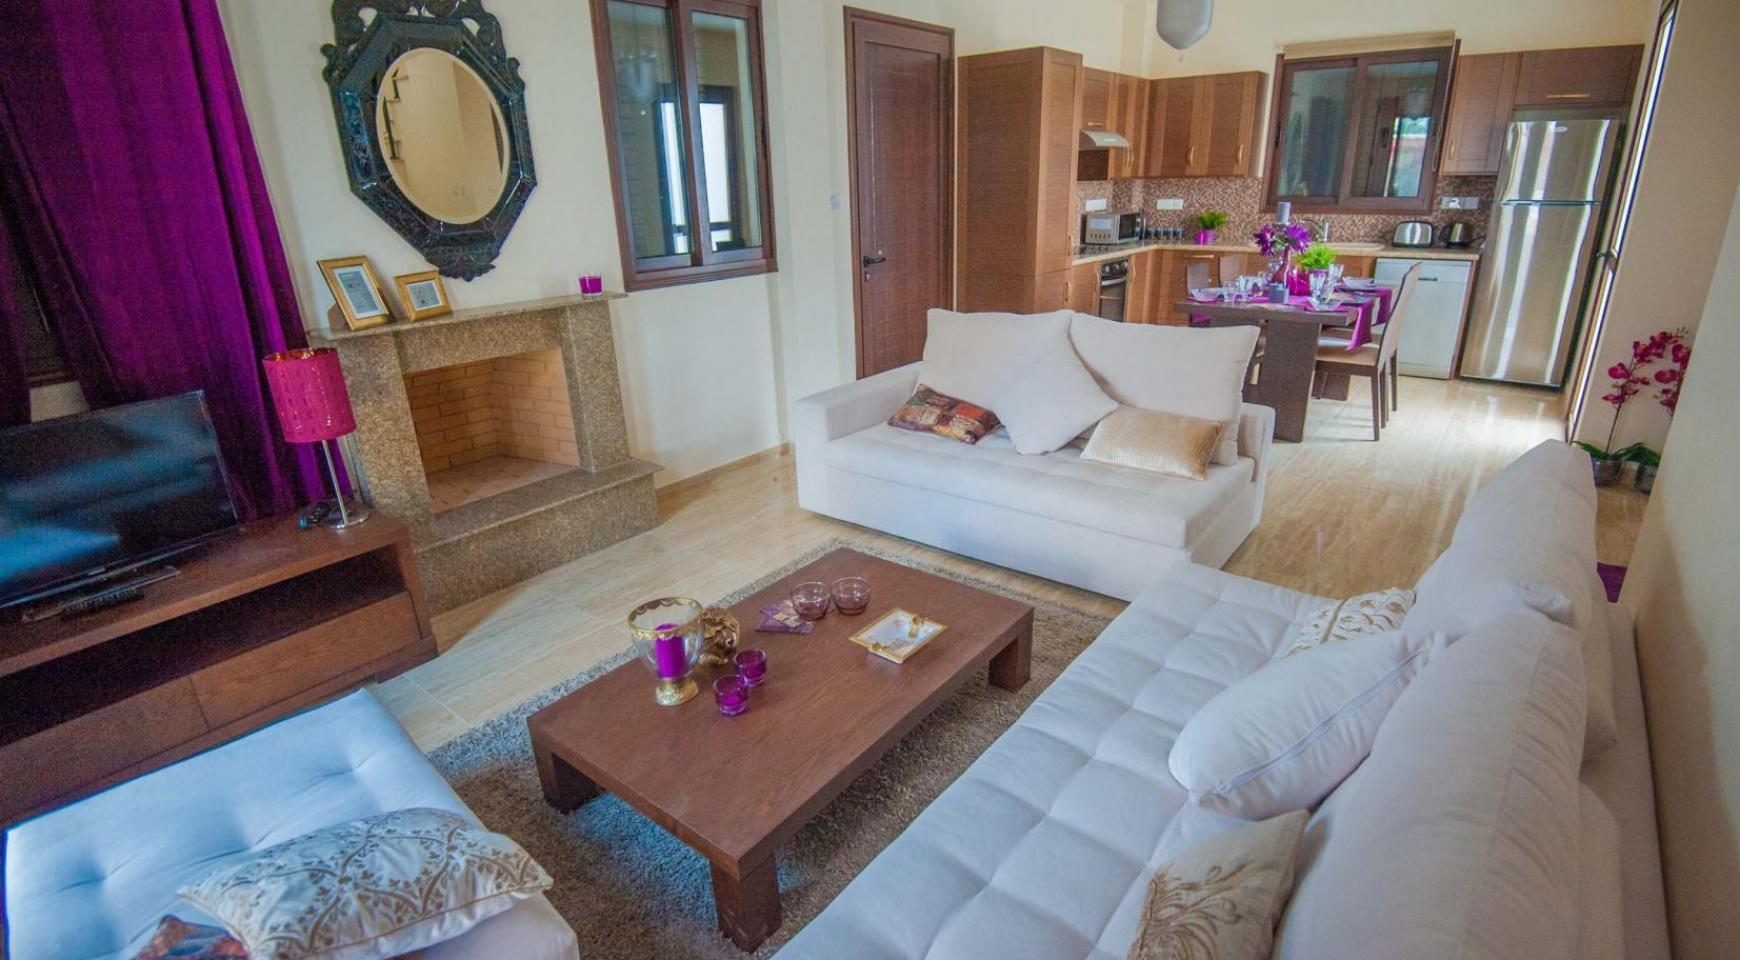 3 Bedroom House on the Seafront of Ayia Thekla - 3